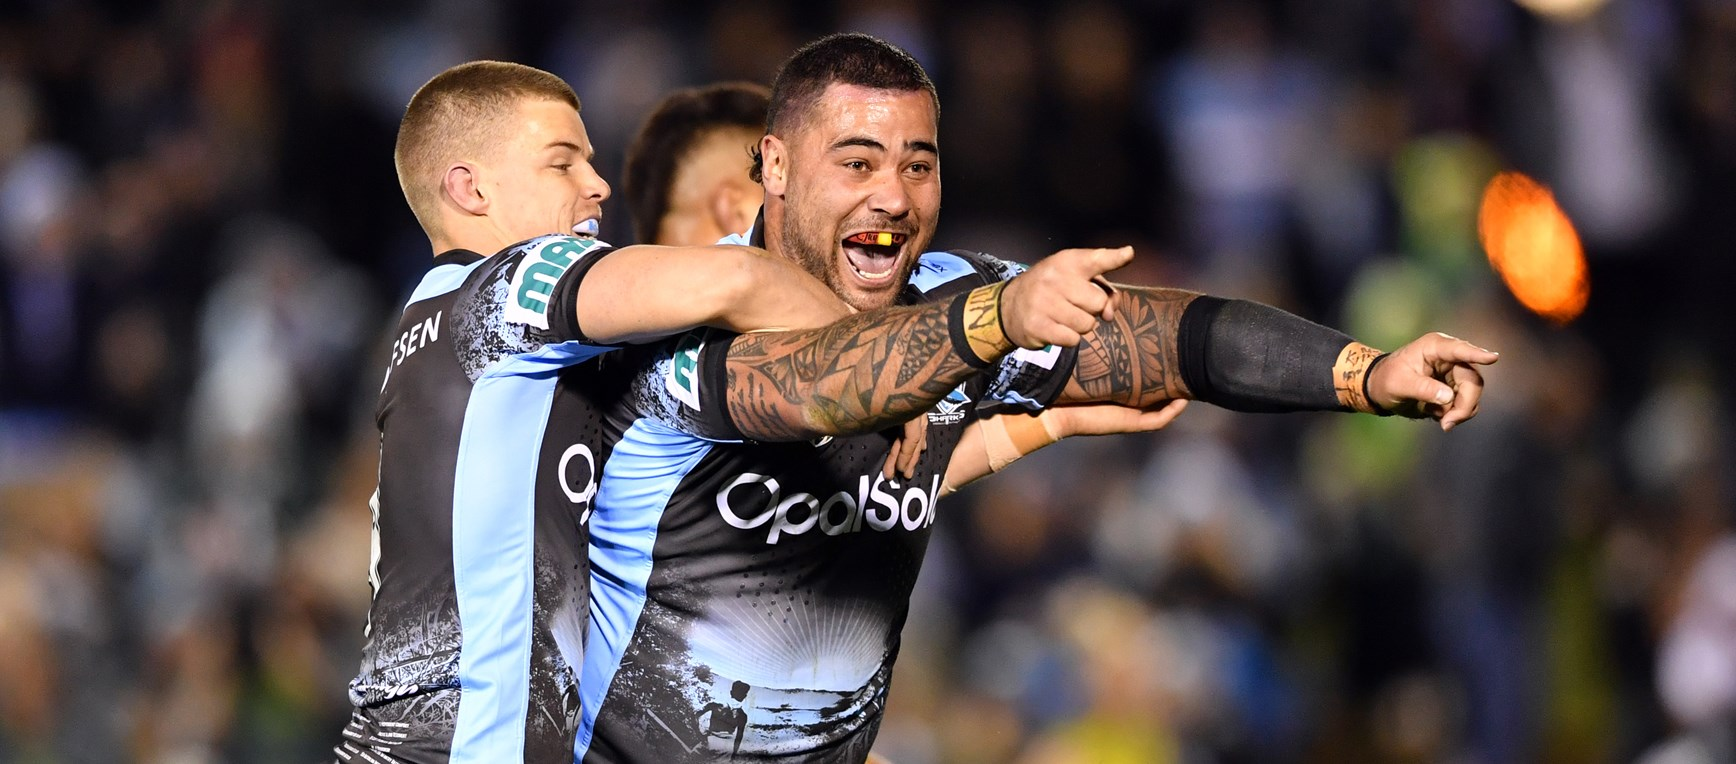 Cronulla Sharks: Best photos of 2018